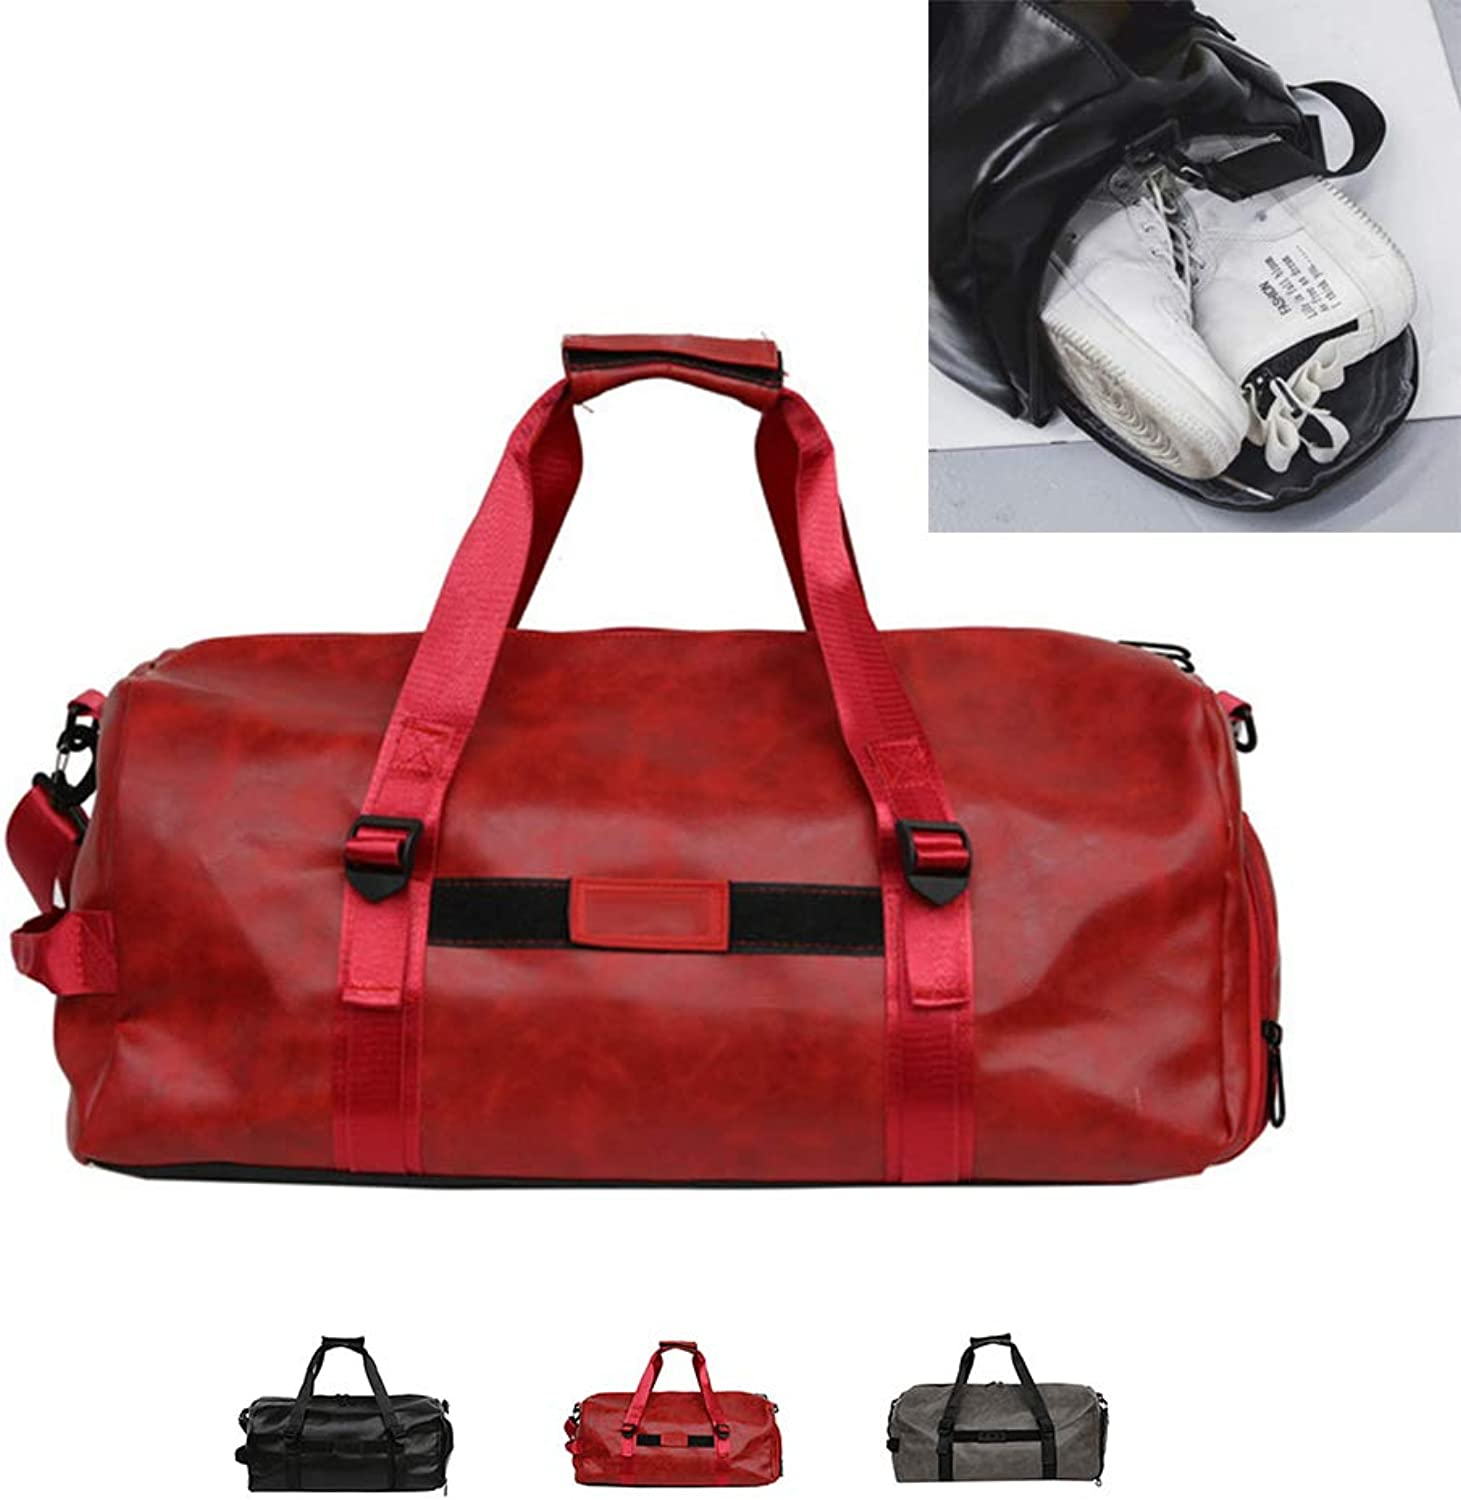 Gym Bag with shoes Compartment, Travel Duffle Sport Bag Training Handbag Shoulder Tote Bag for Men and Women,Red,M